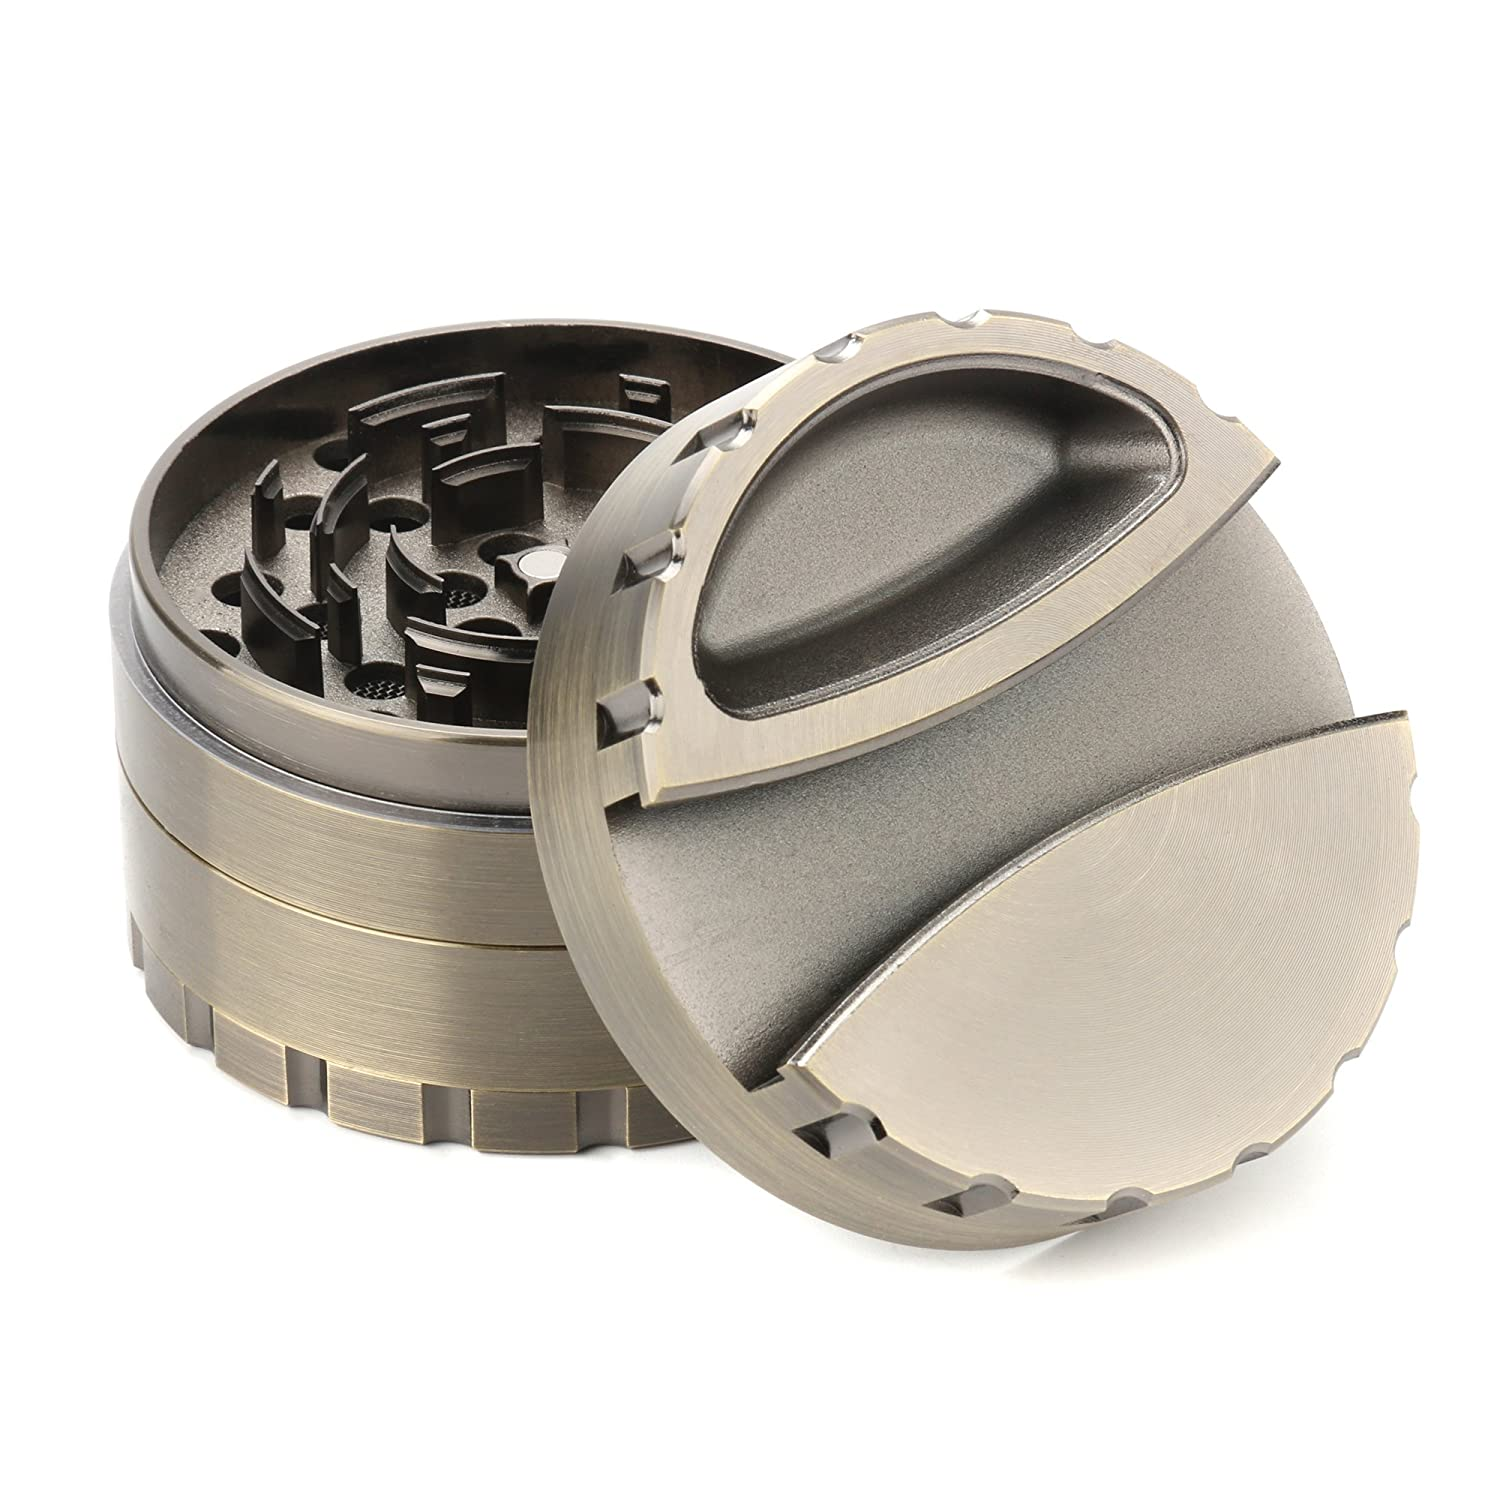 80MM Multifunctional Grinder, Fancyli Big Size 4 Pieces Tobacco Grinder herb Grinder Spice Grinder Herb Grinder Ashtray Clip Grinder 3-1 Design with Pollen Catcher